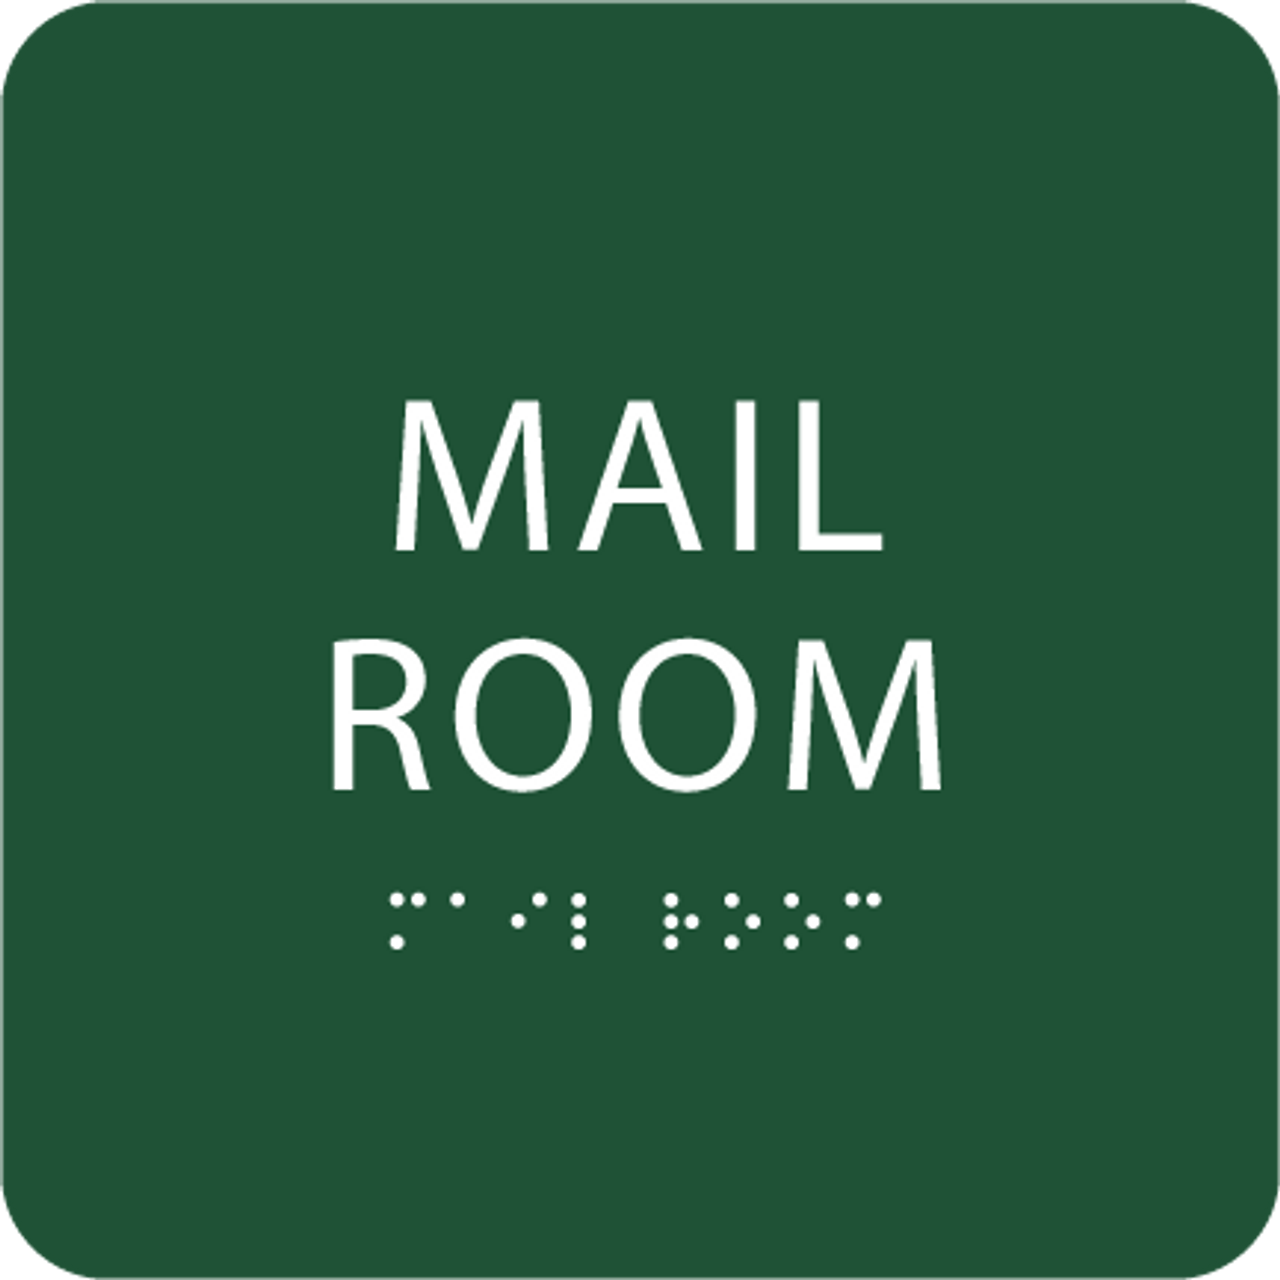 Green Mail Room Tactile Sign